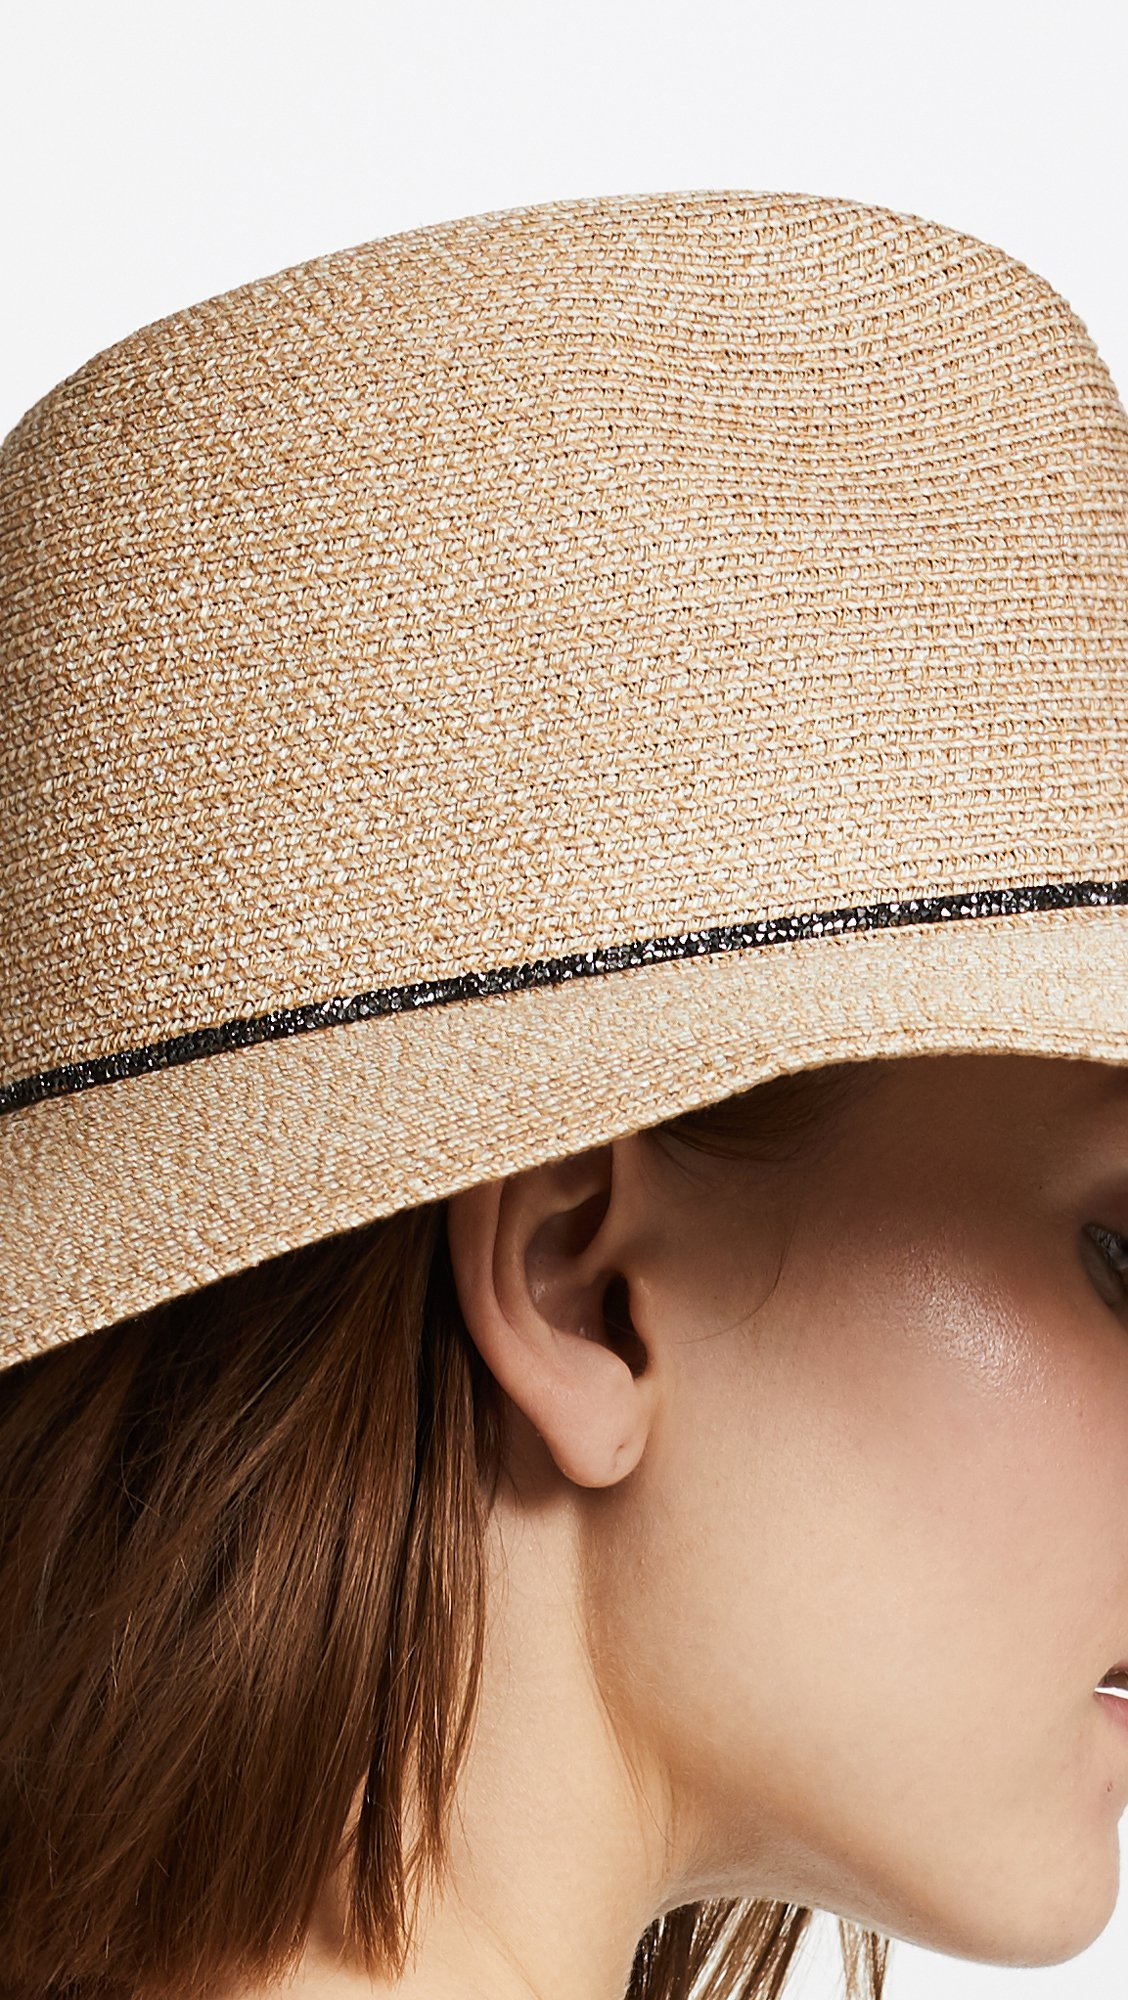 Eugenia Kim Women's Emmanuelle Beach Hat, Sand, One Size by Eugenia Kim (Image #4)